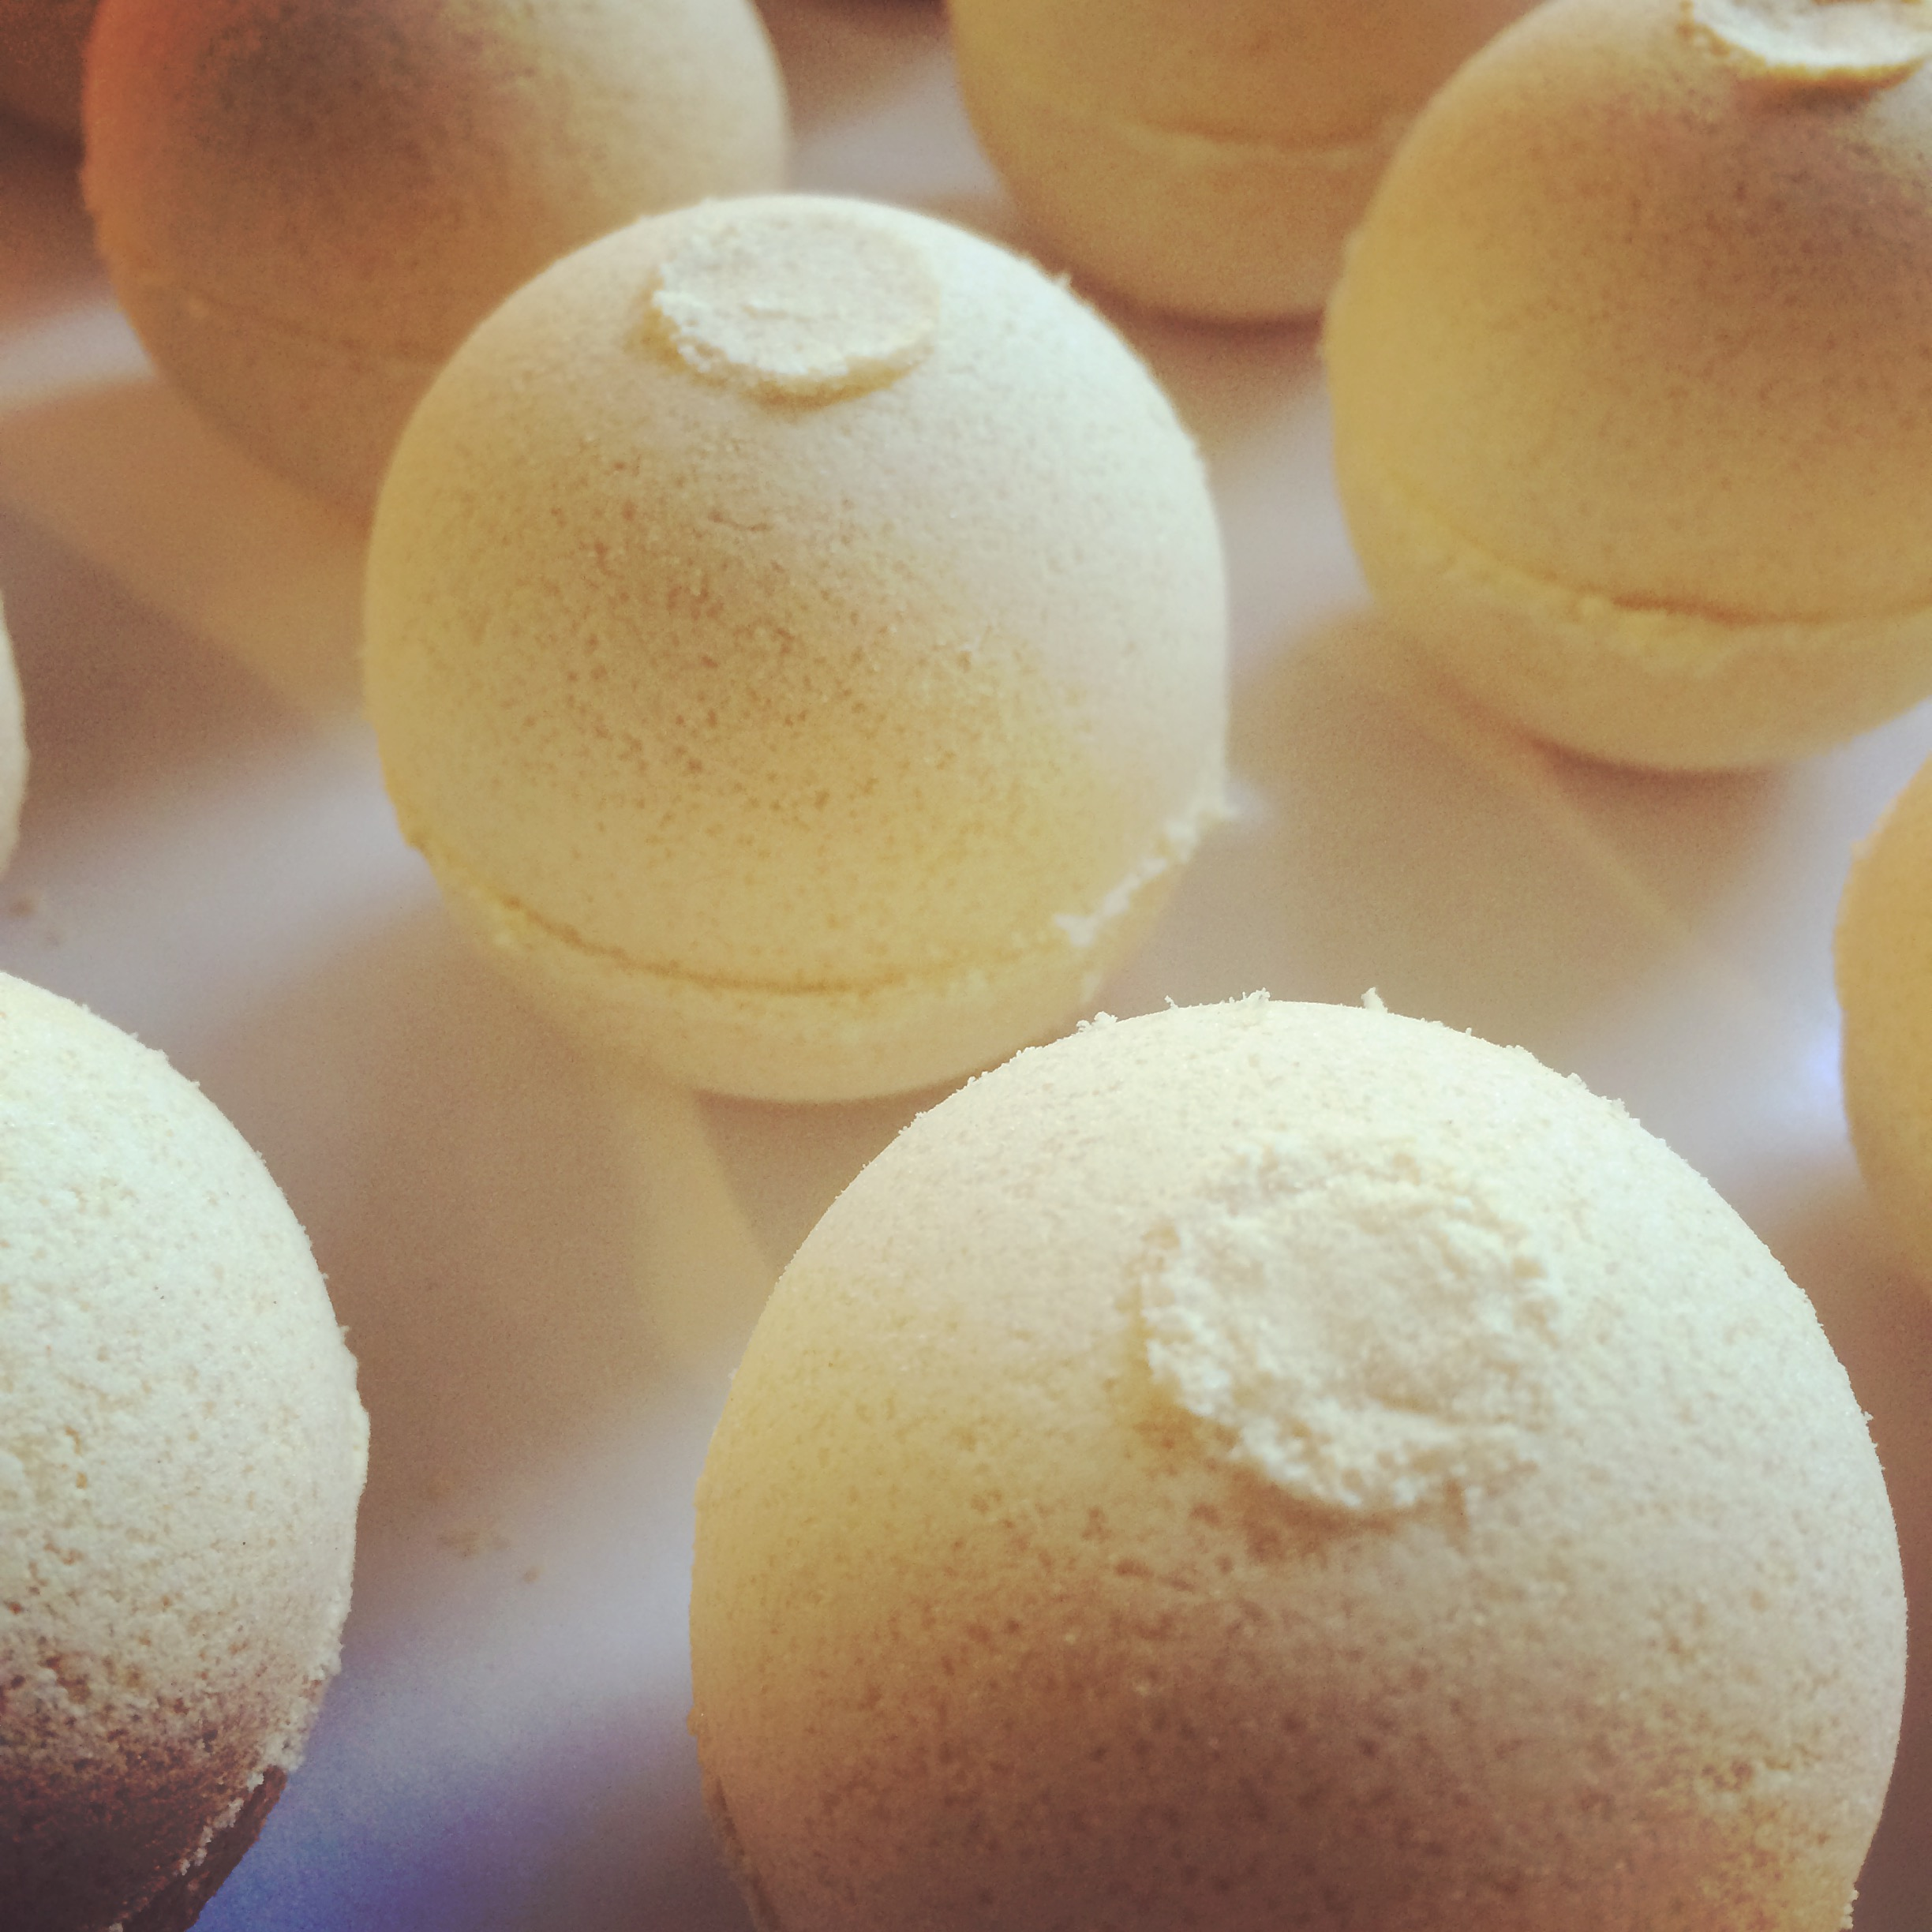 bath bomb with goat milk in lemongrass scent